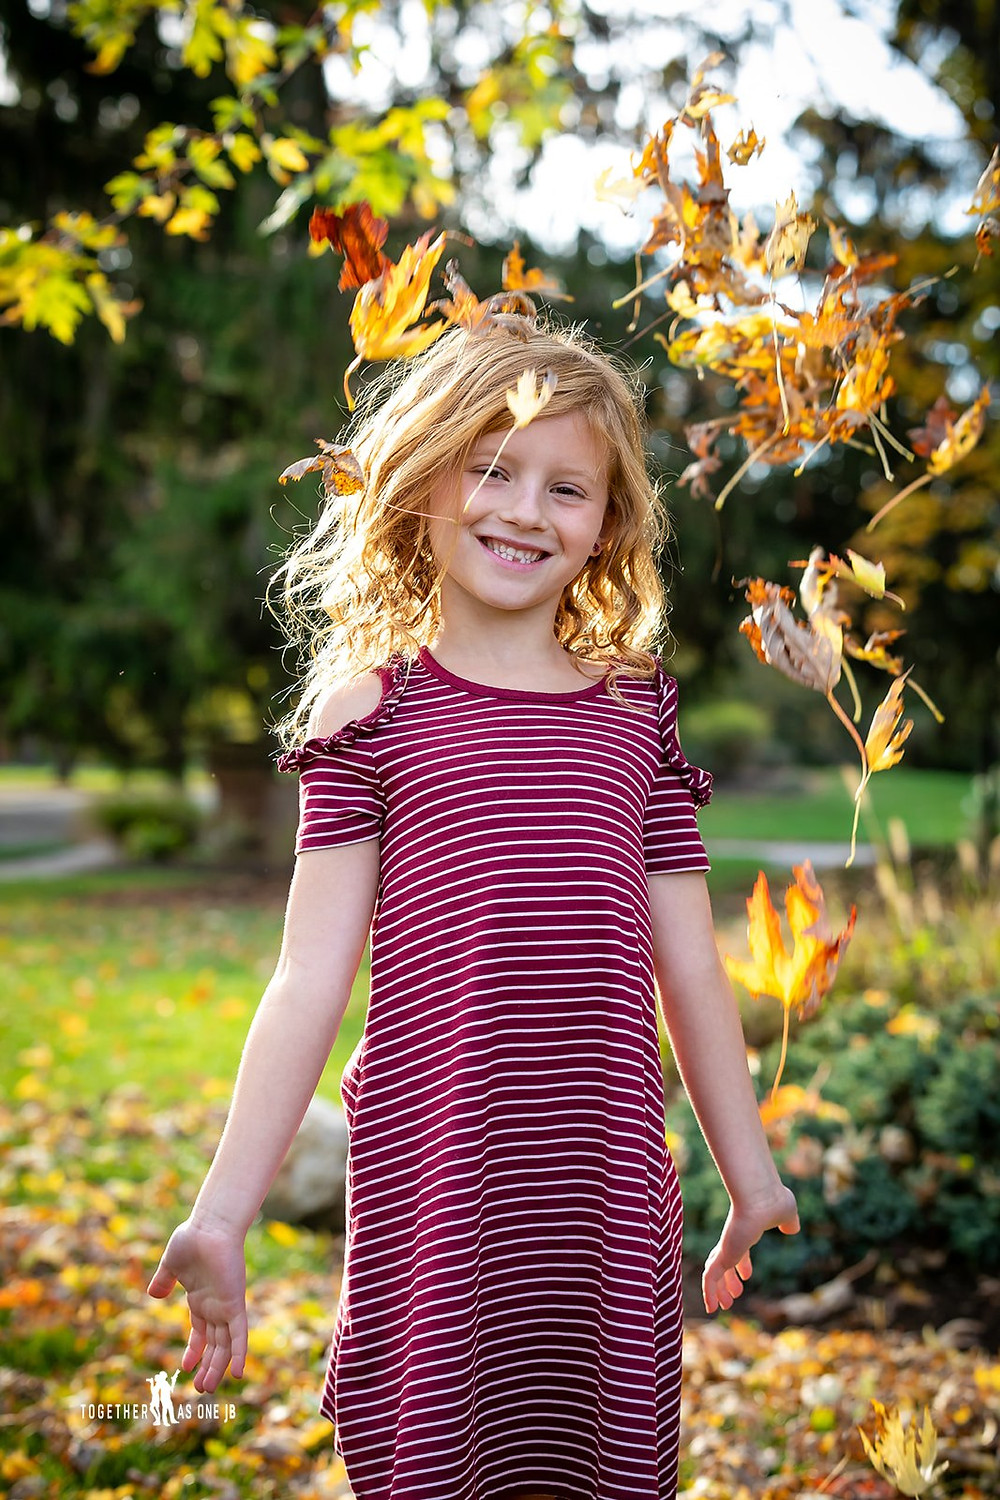 Cincinnati family photographer captures portrait photography of smiling ginger girl in autumn.